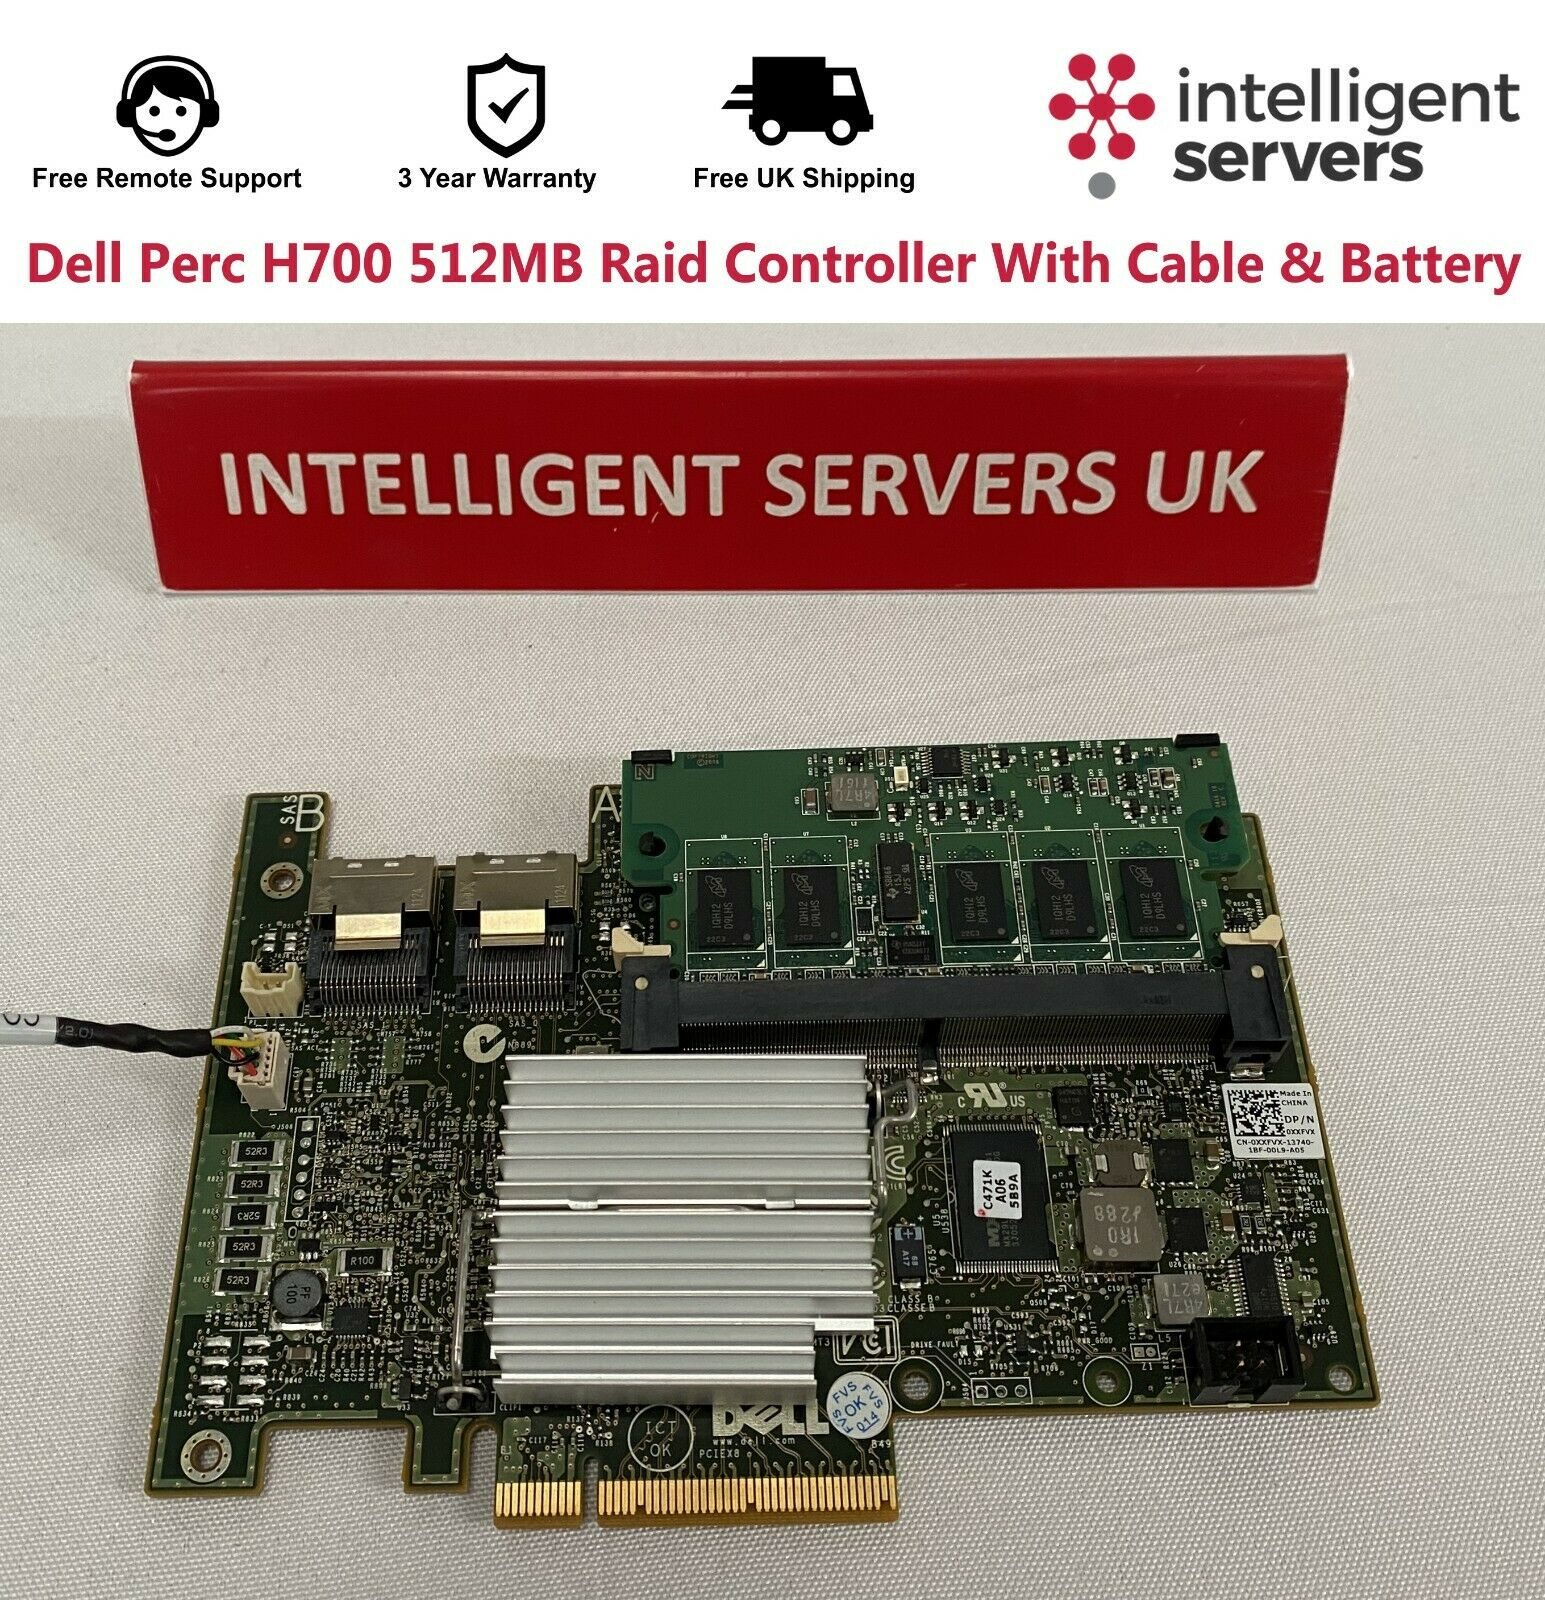 Dell Perc H700 512MB Raid Controller With Cable & Battery - XXFVX